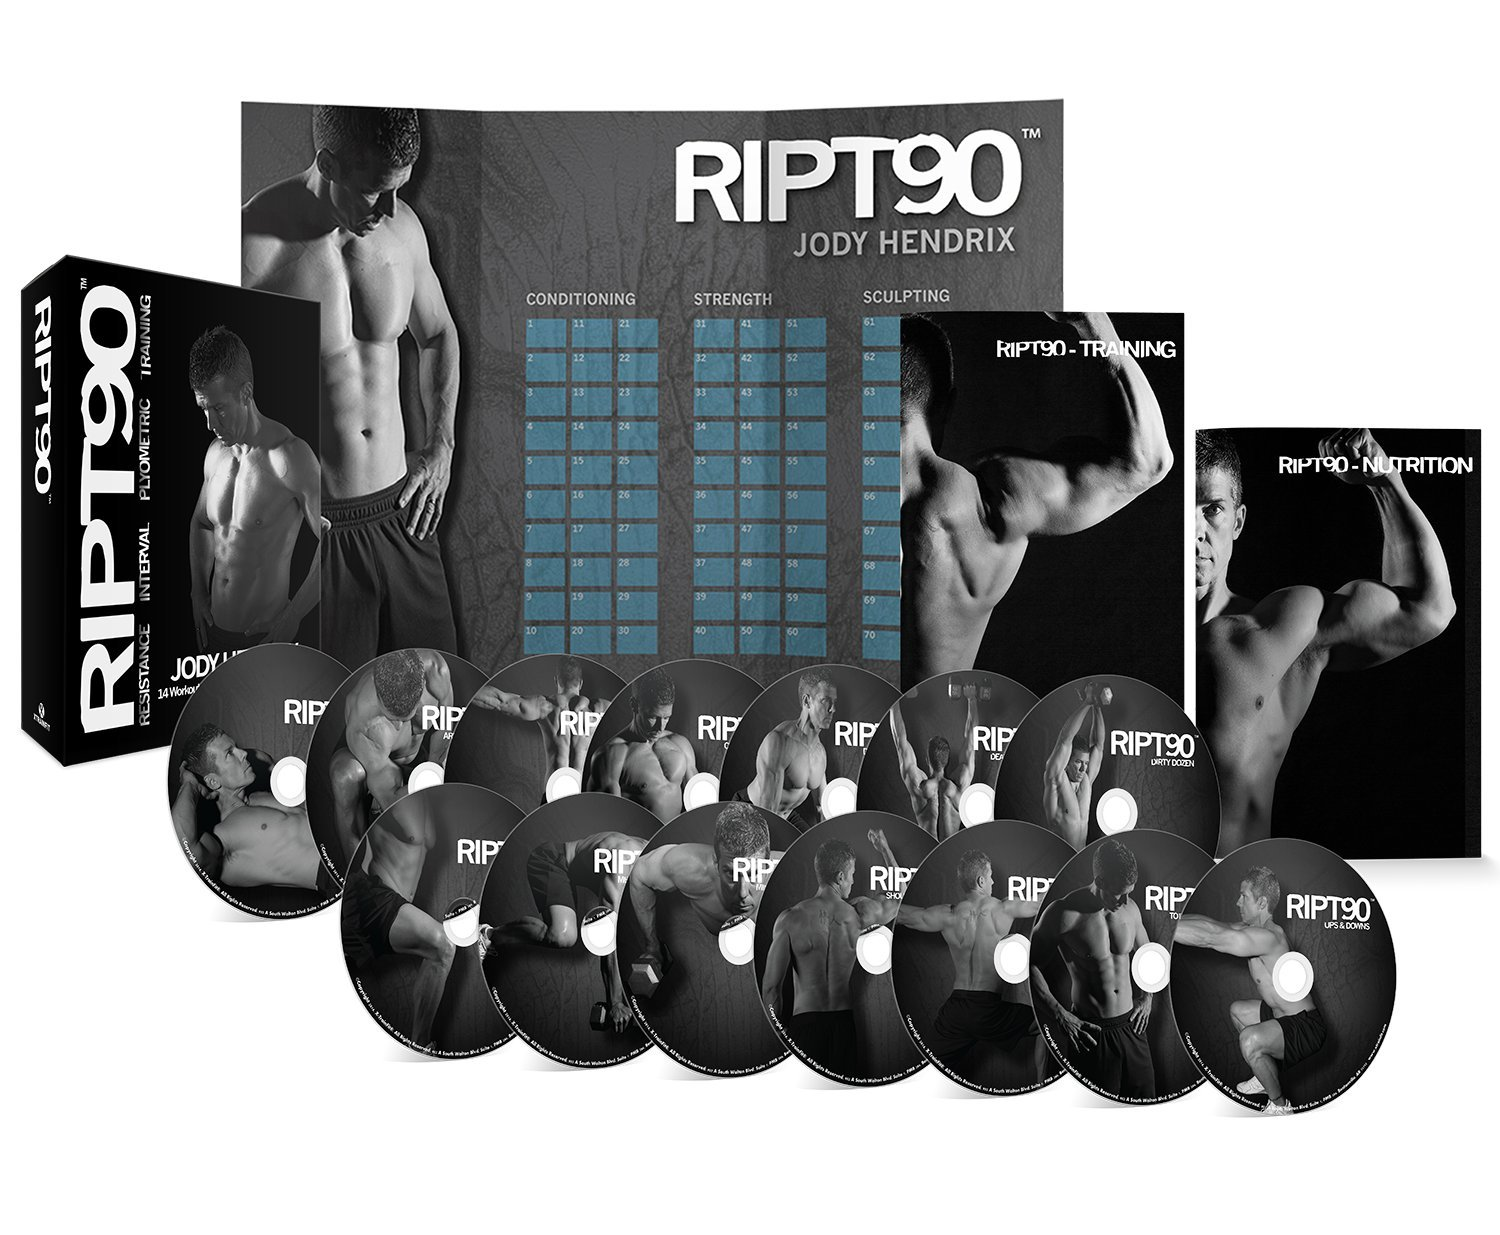 RIPT90: 90 Day 14-DVD Workout Program with 14 Exercise Videos Training Calendar